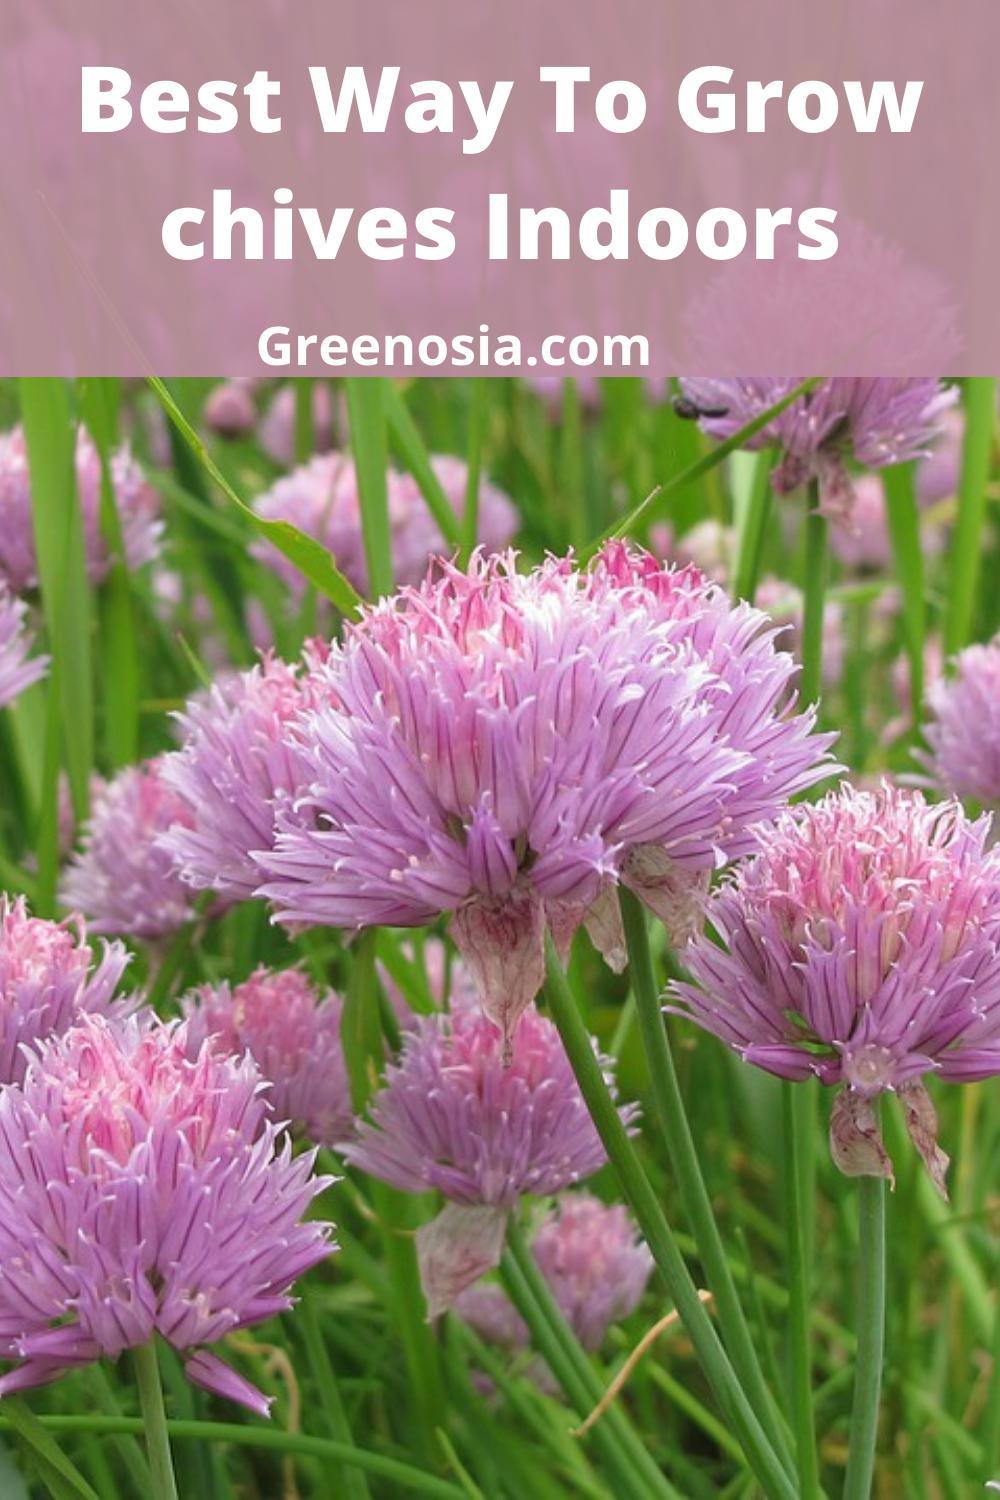 How To Grow Chives 10 Proven Tips The Gardening Dad Growing Chives Chives Plant Chives